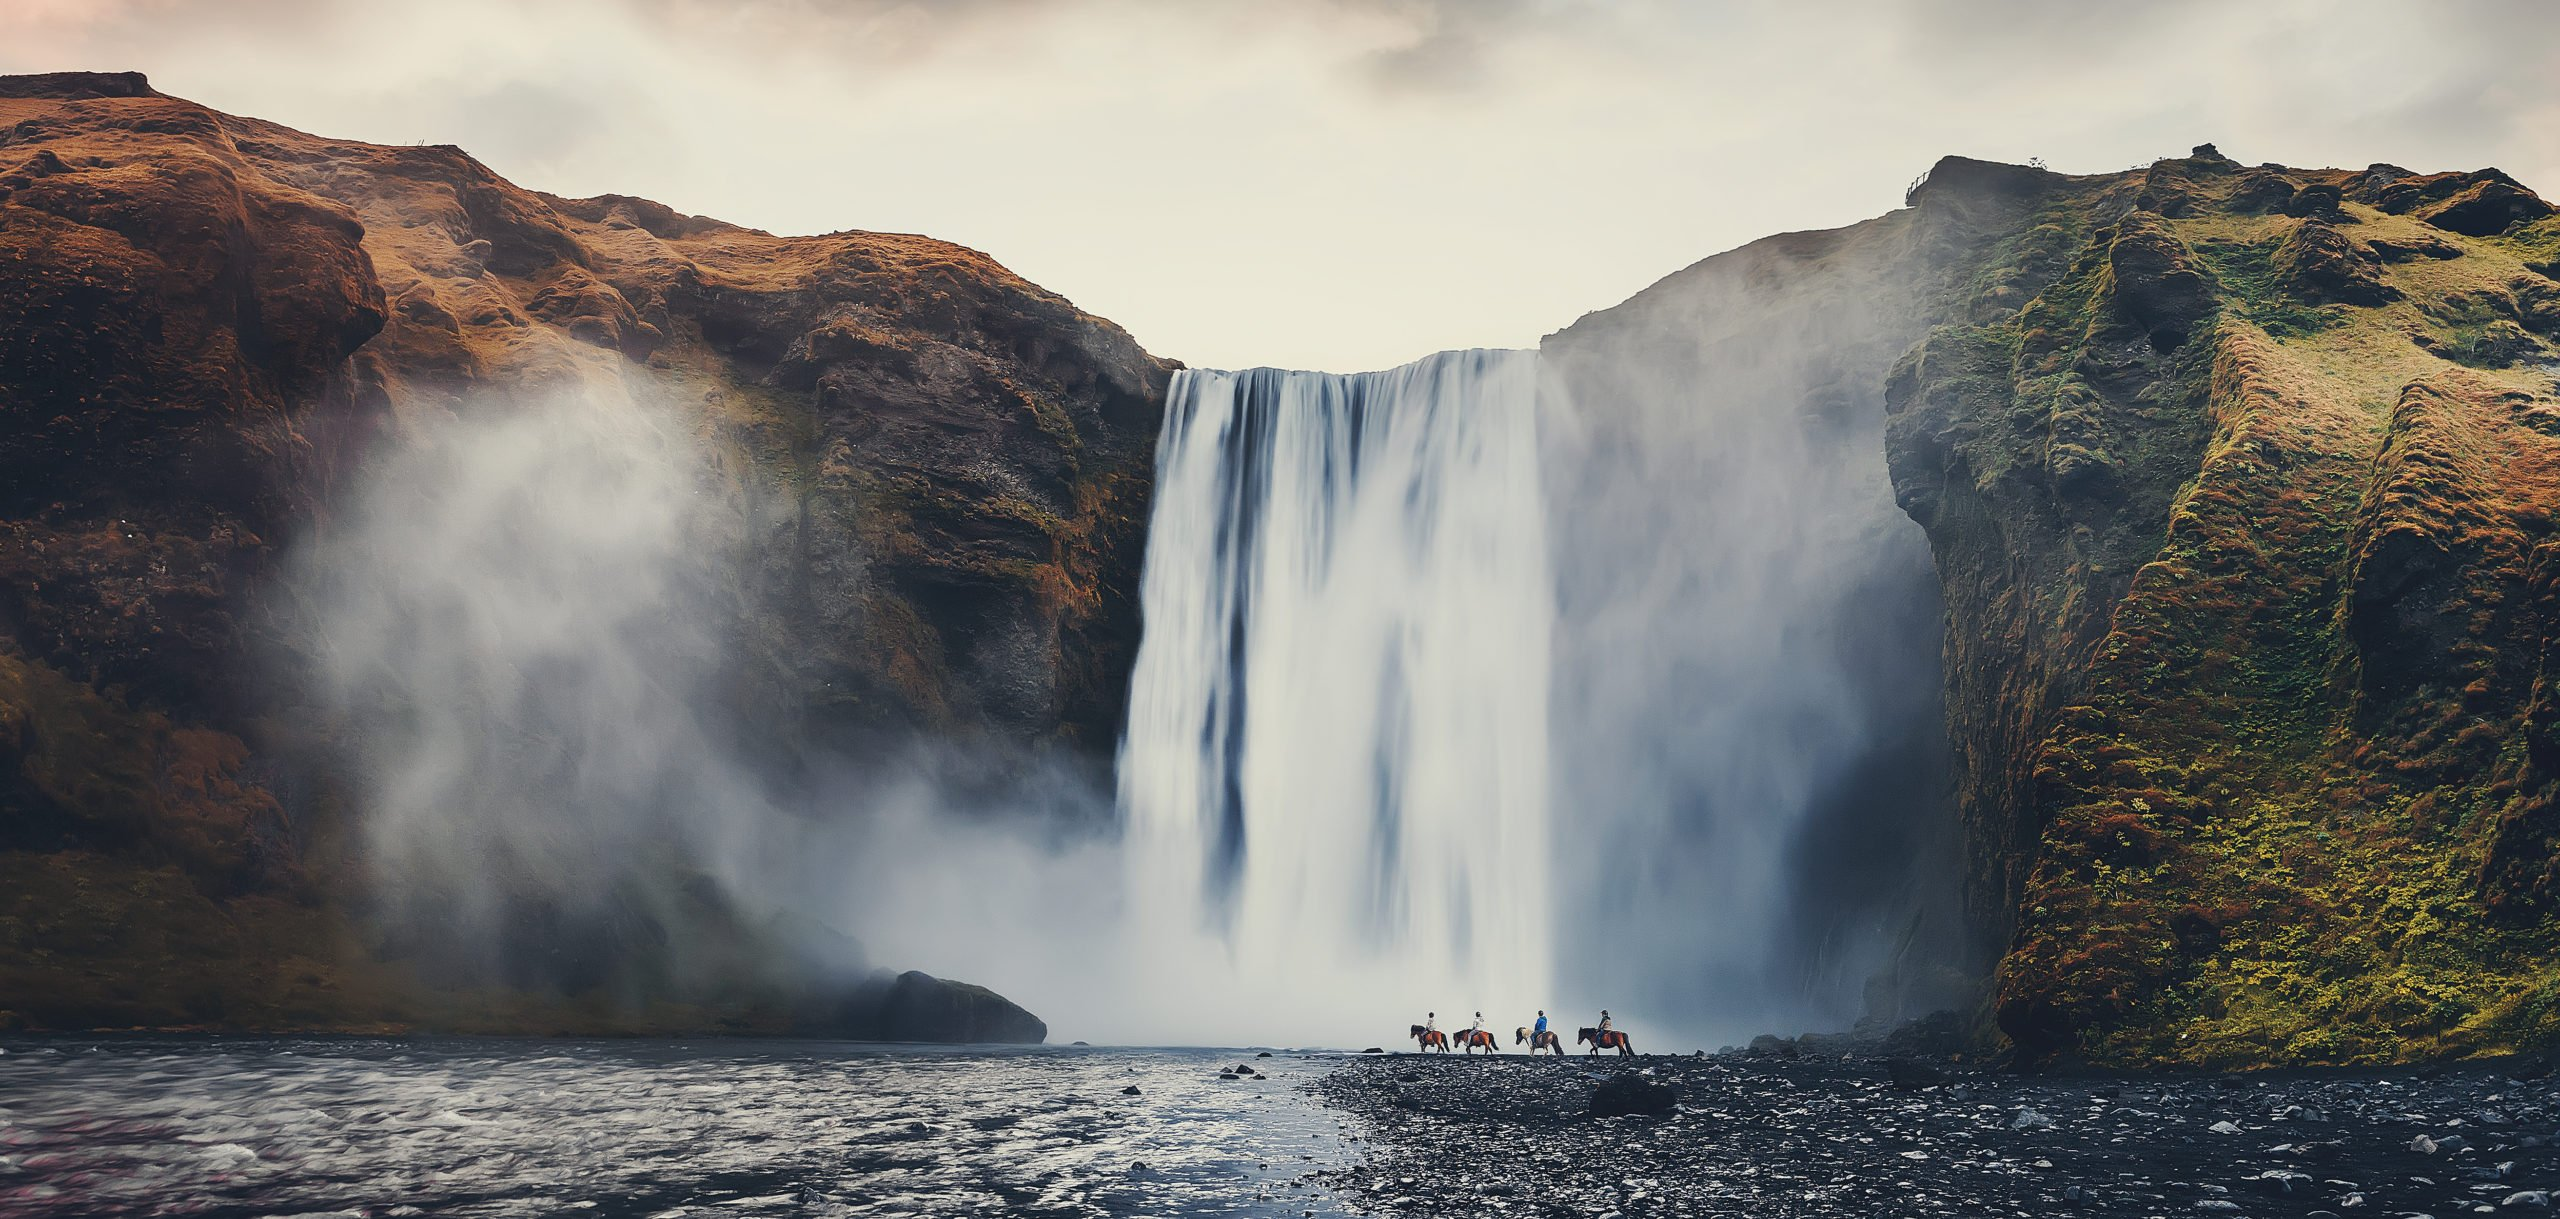 See The Famous Skogafoss Waterfall In Our South Coast And Katla Natural Ice Cave Tour